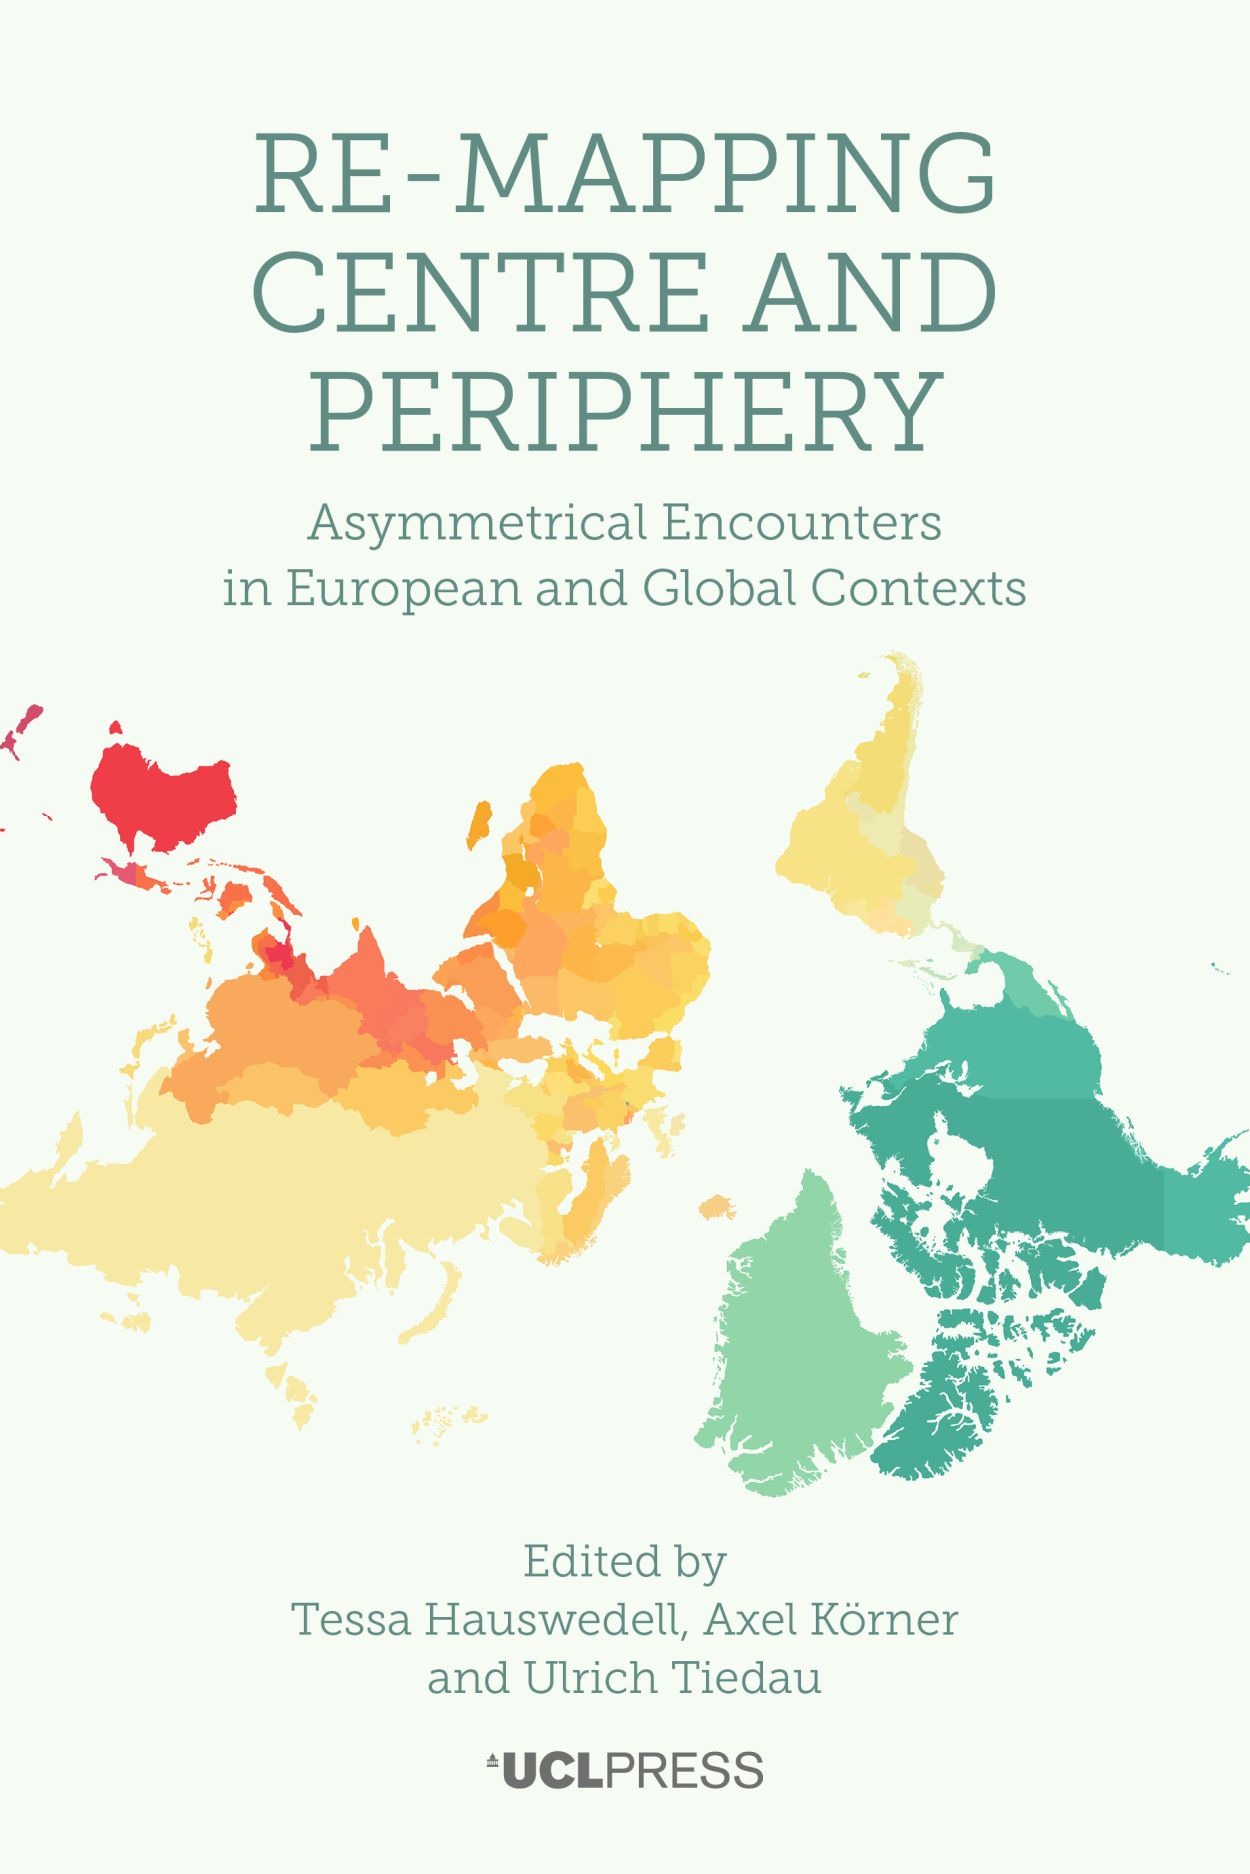 Re-Mapping Centre and Periphery: Asymmetrical Encounters in European and Global Contexts